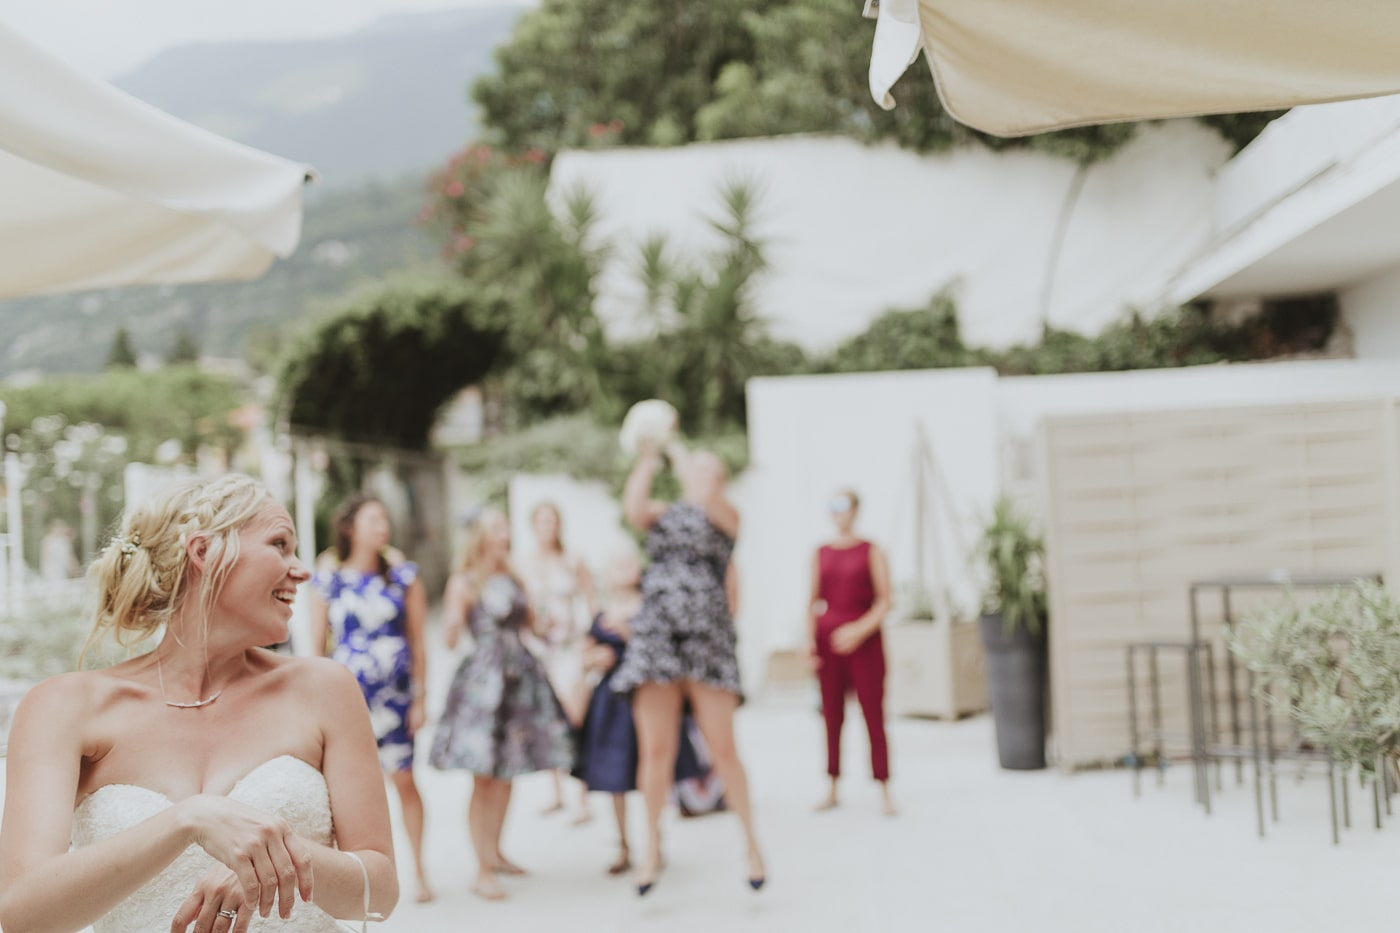 Happy bride throwing bouquet of white flowers to group of women who are jumping up to catch it by Joshua Wyborn